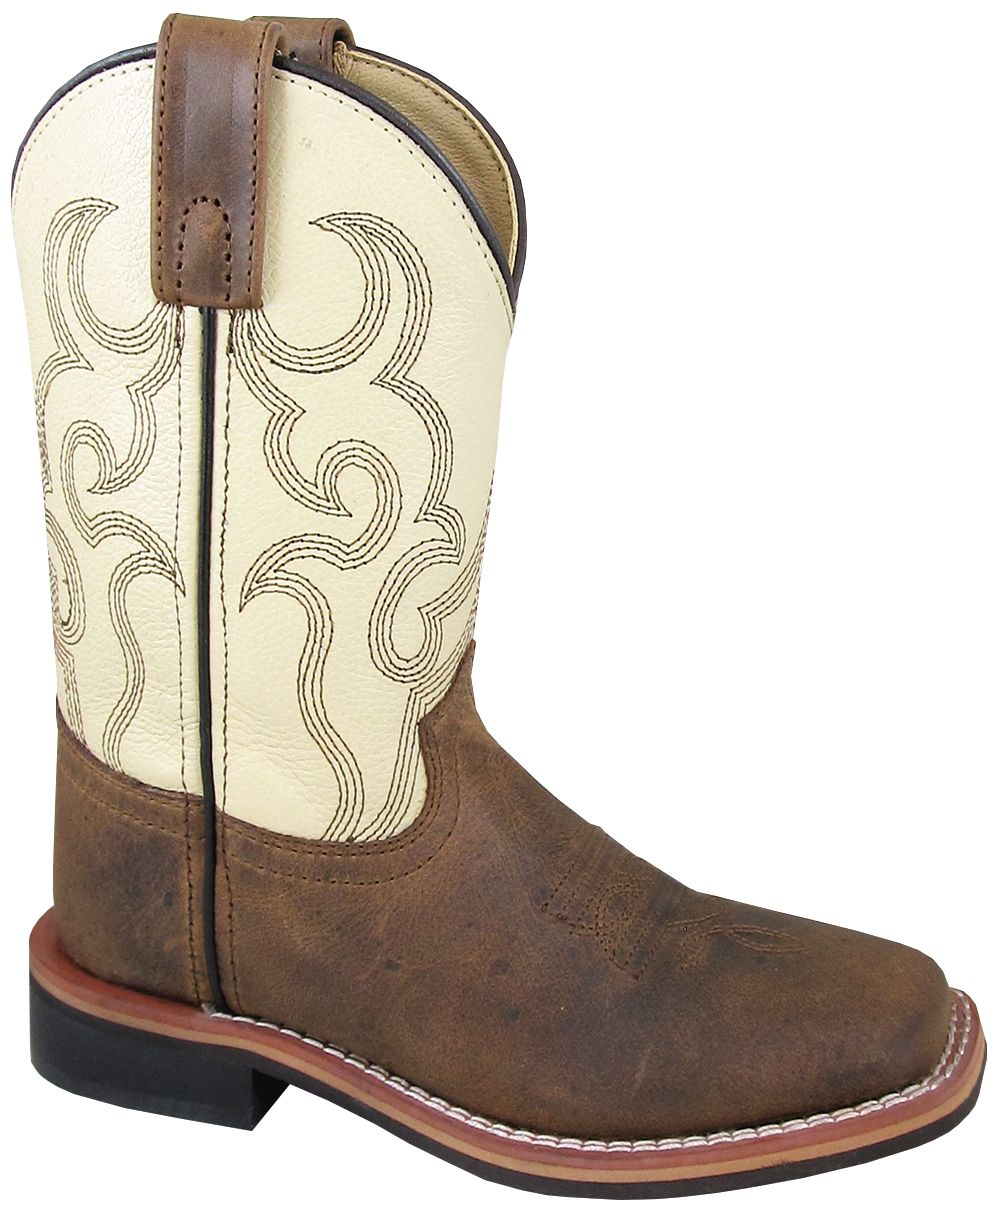 'Smoky Mountain' Children's Scout Western Square Toe - Brown / Cream